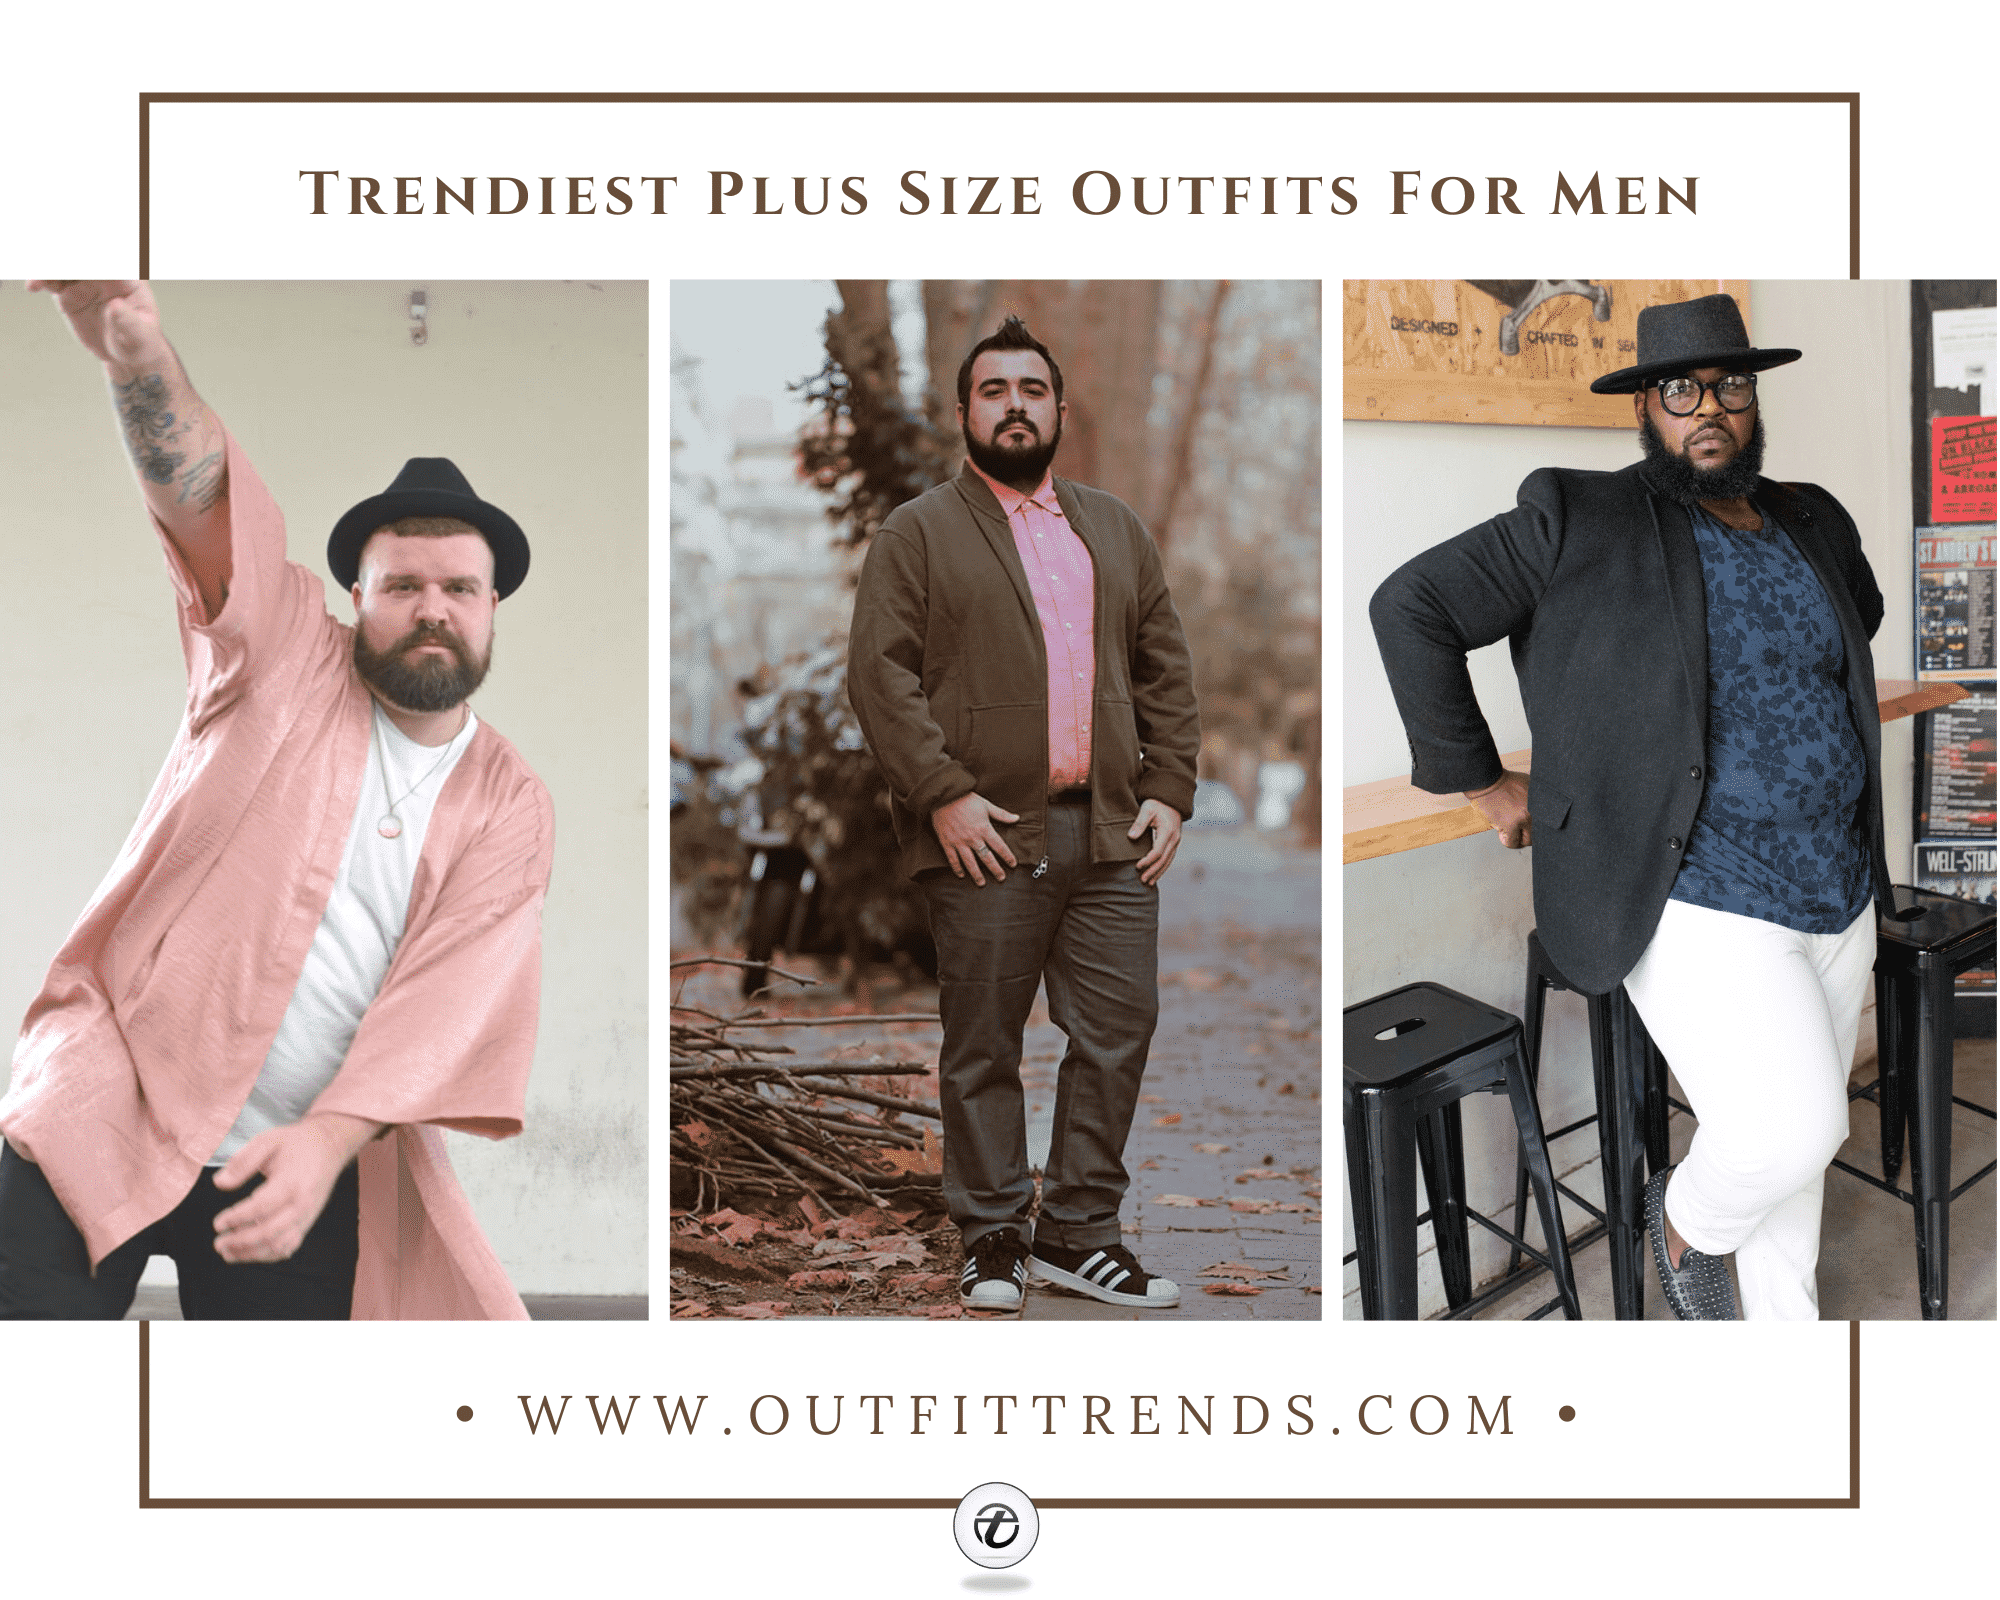 Outfits for Plus Size Guys–26 Best Styles & Tips for Big Men